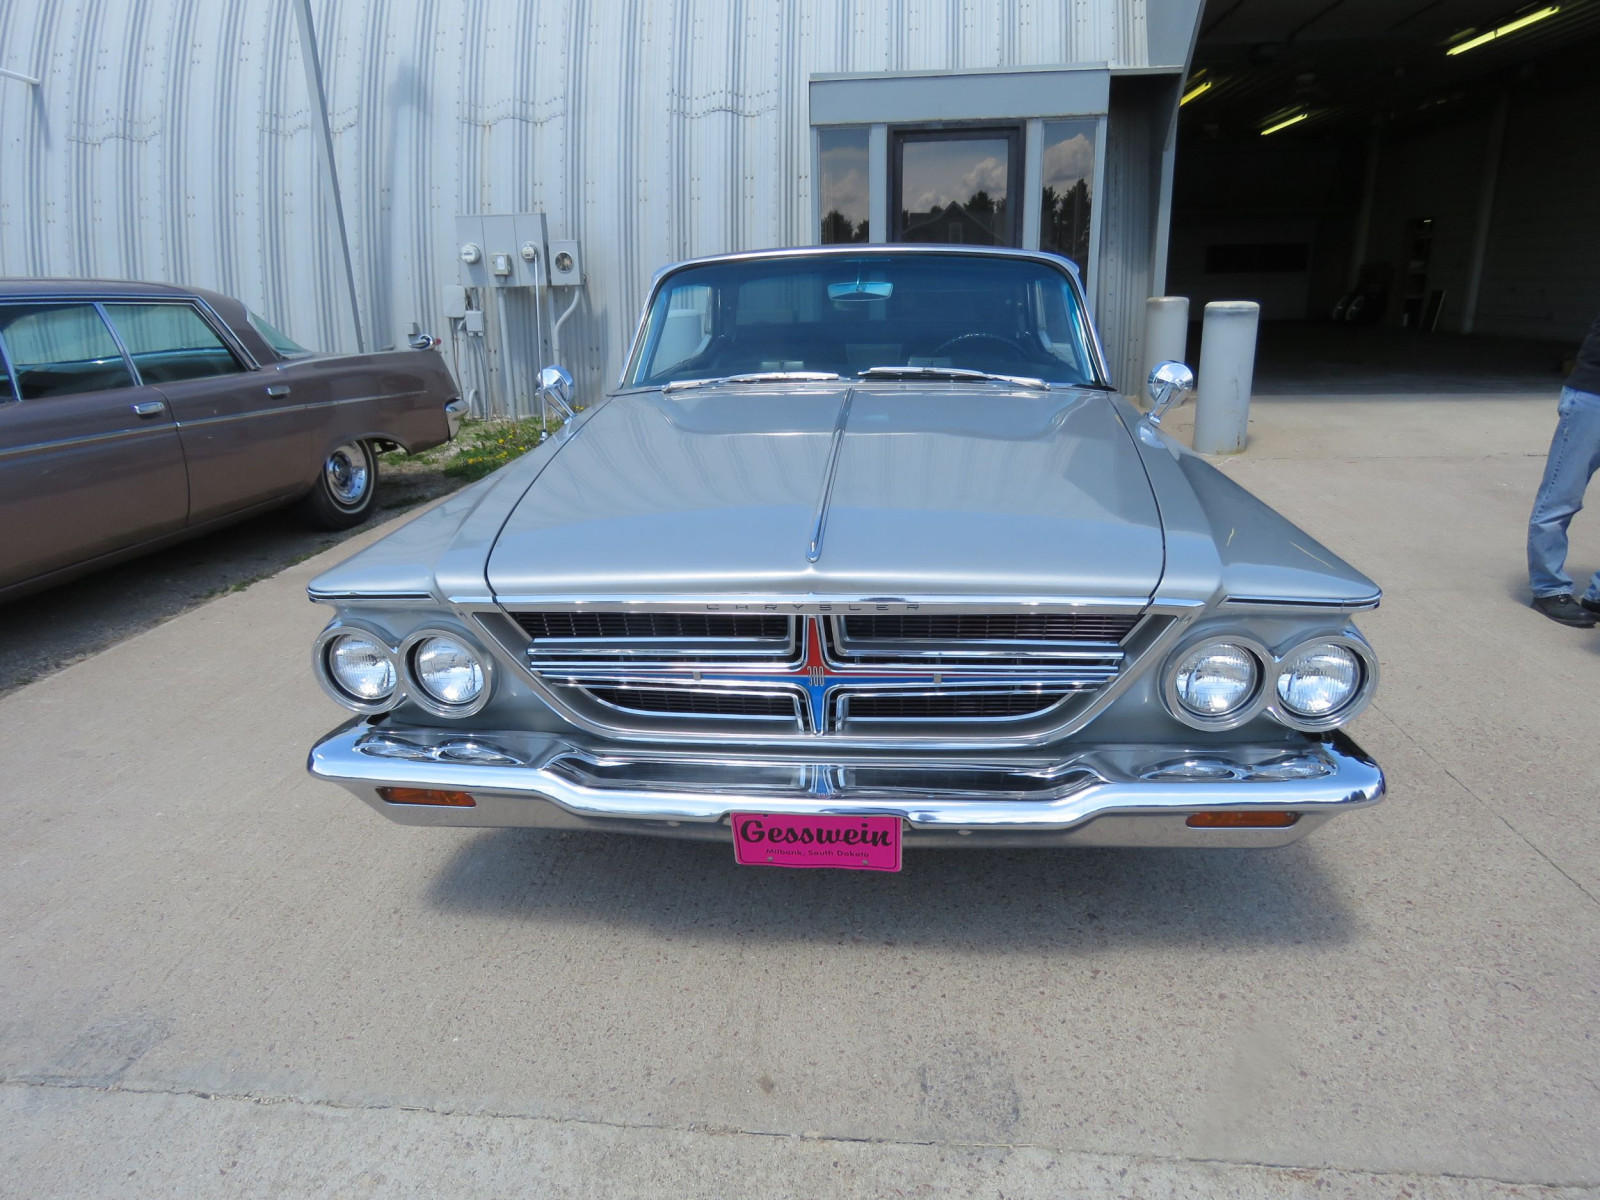 1964 Chrysler 300 Silver Edition 2dr HT - Image 2